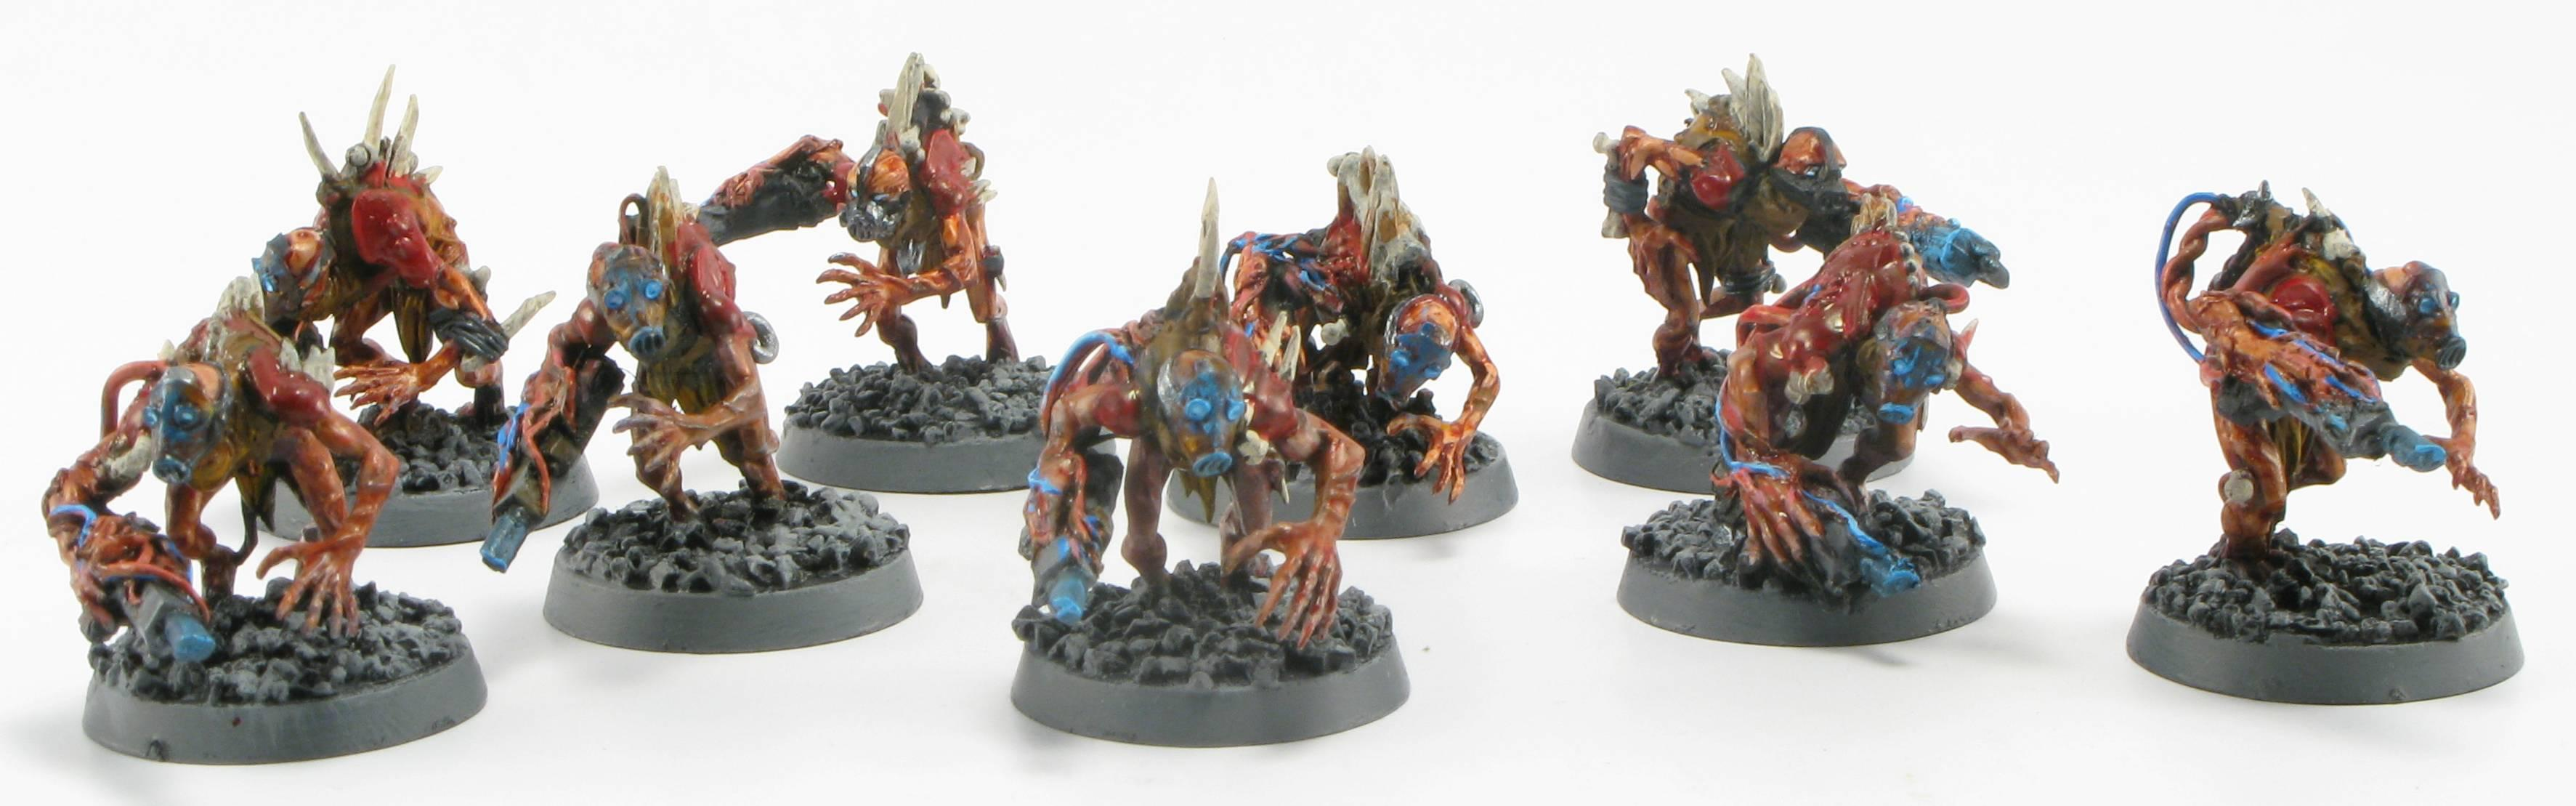 Chaos Daemons, Conversion, Ghouls, Horrors, Pig Iron